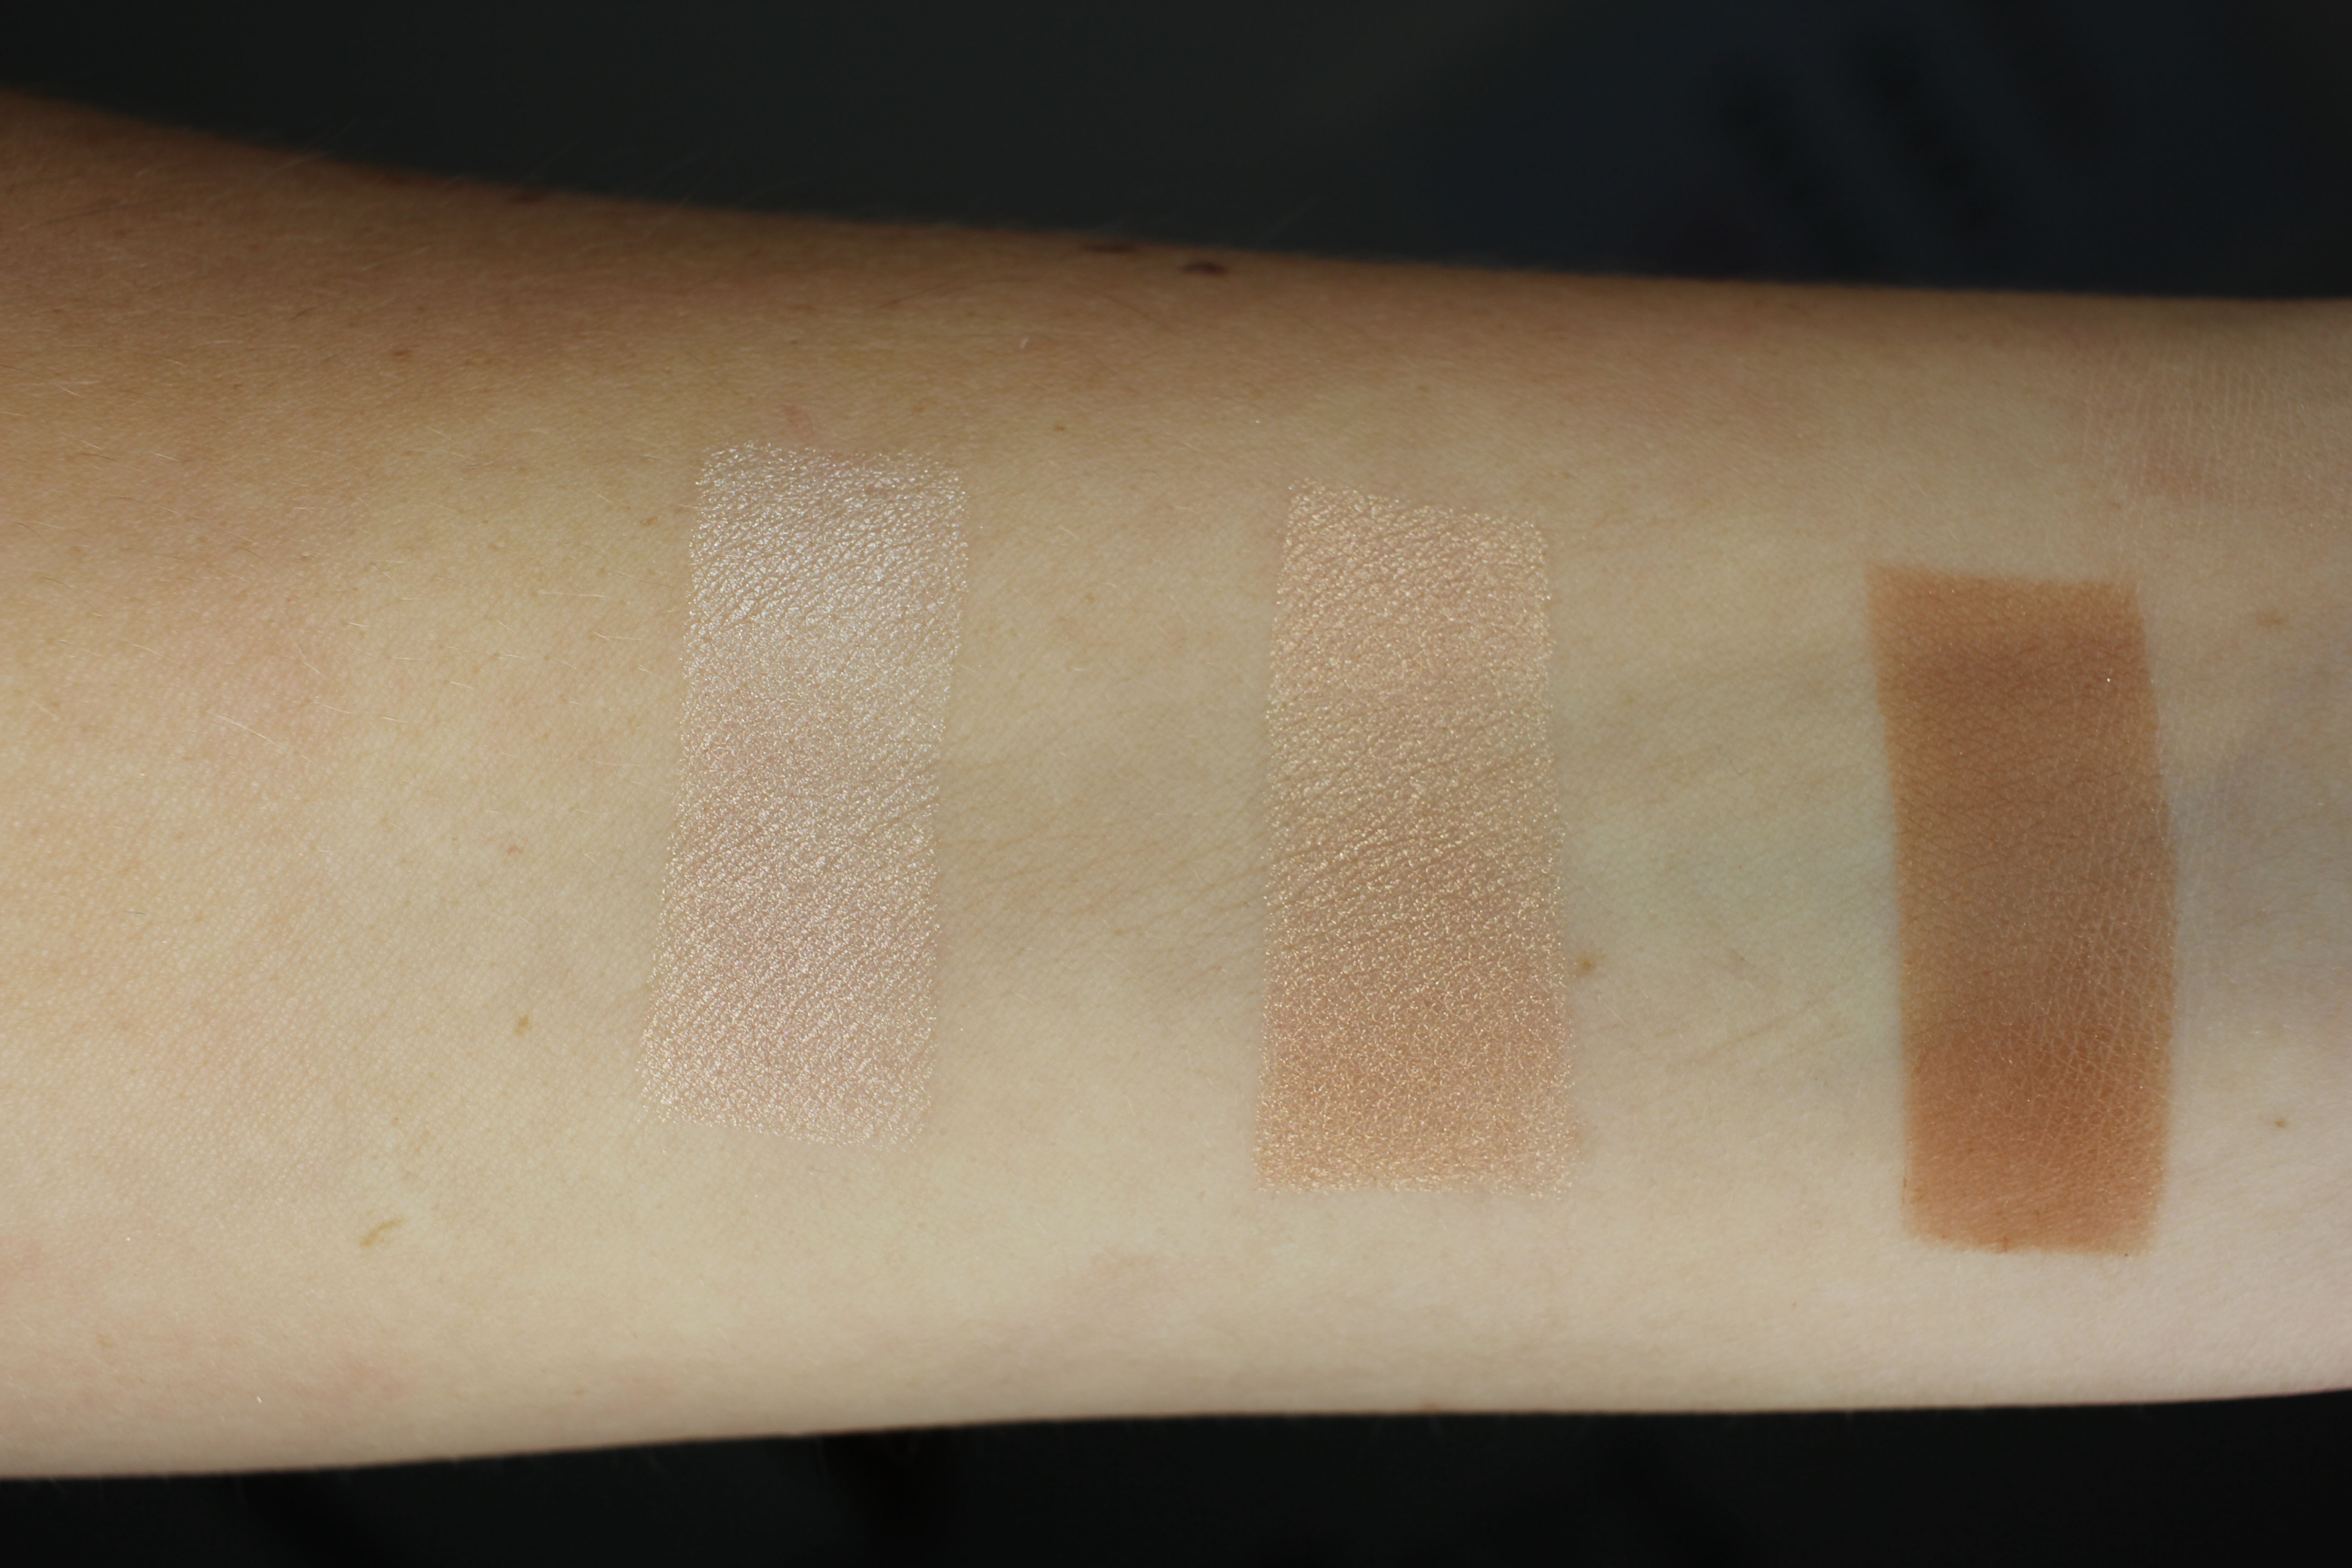 NARS Bord De Plage Highlighting and Bronzing Palette review and swatches